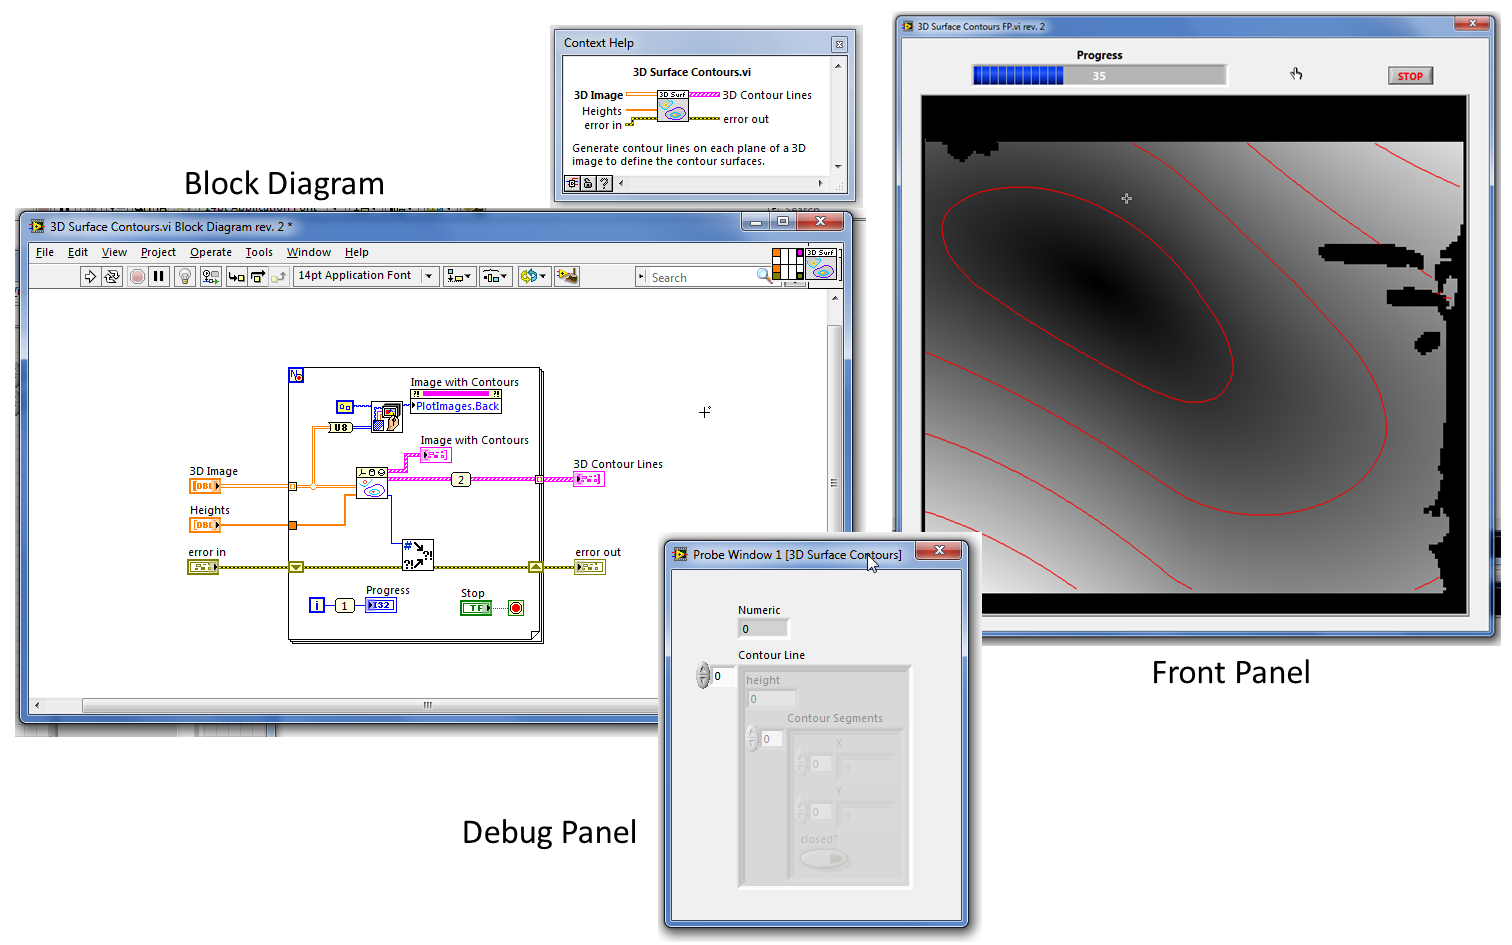 The Block Diagram should be the central VI component (not the Front Panel)  - Discussion Forums - National Instruments